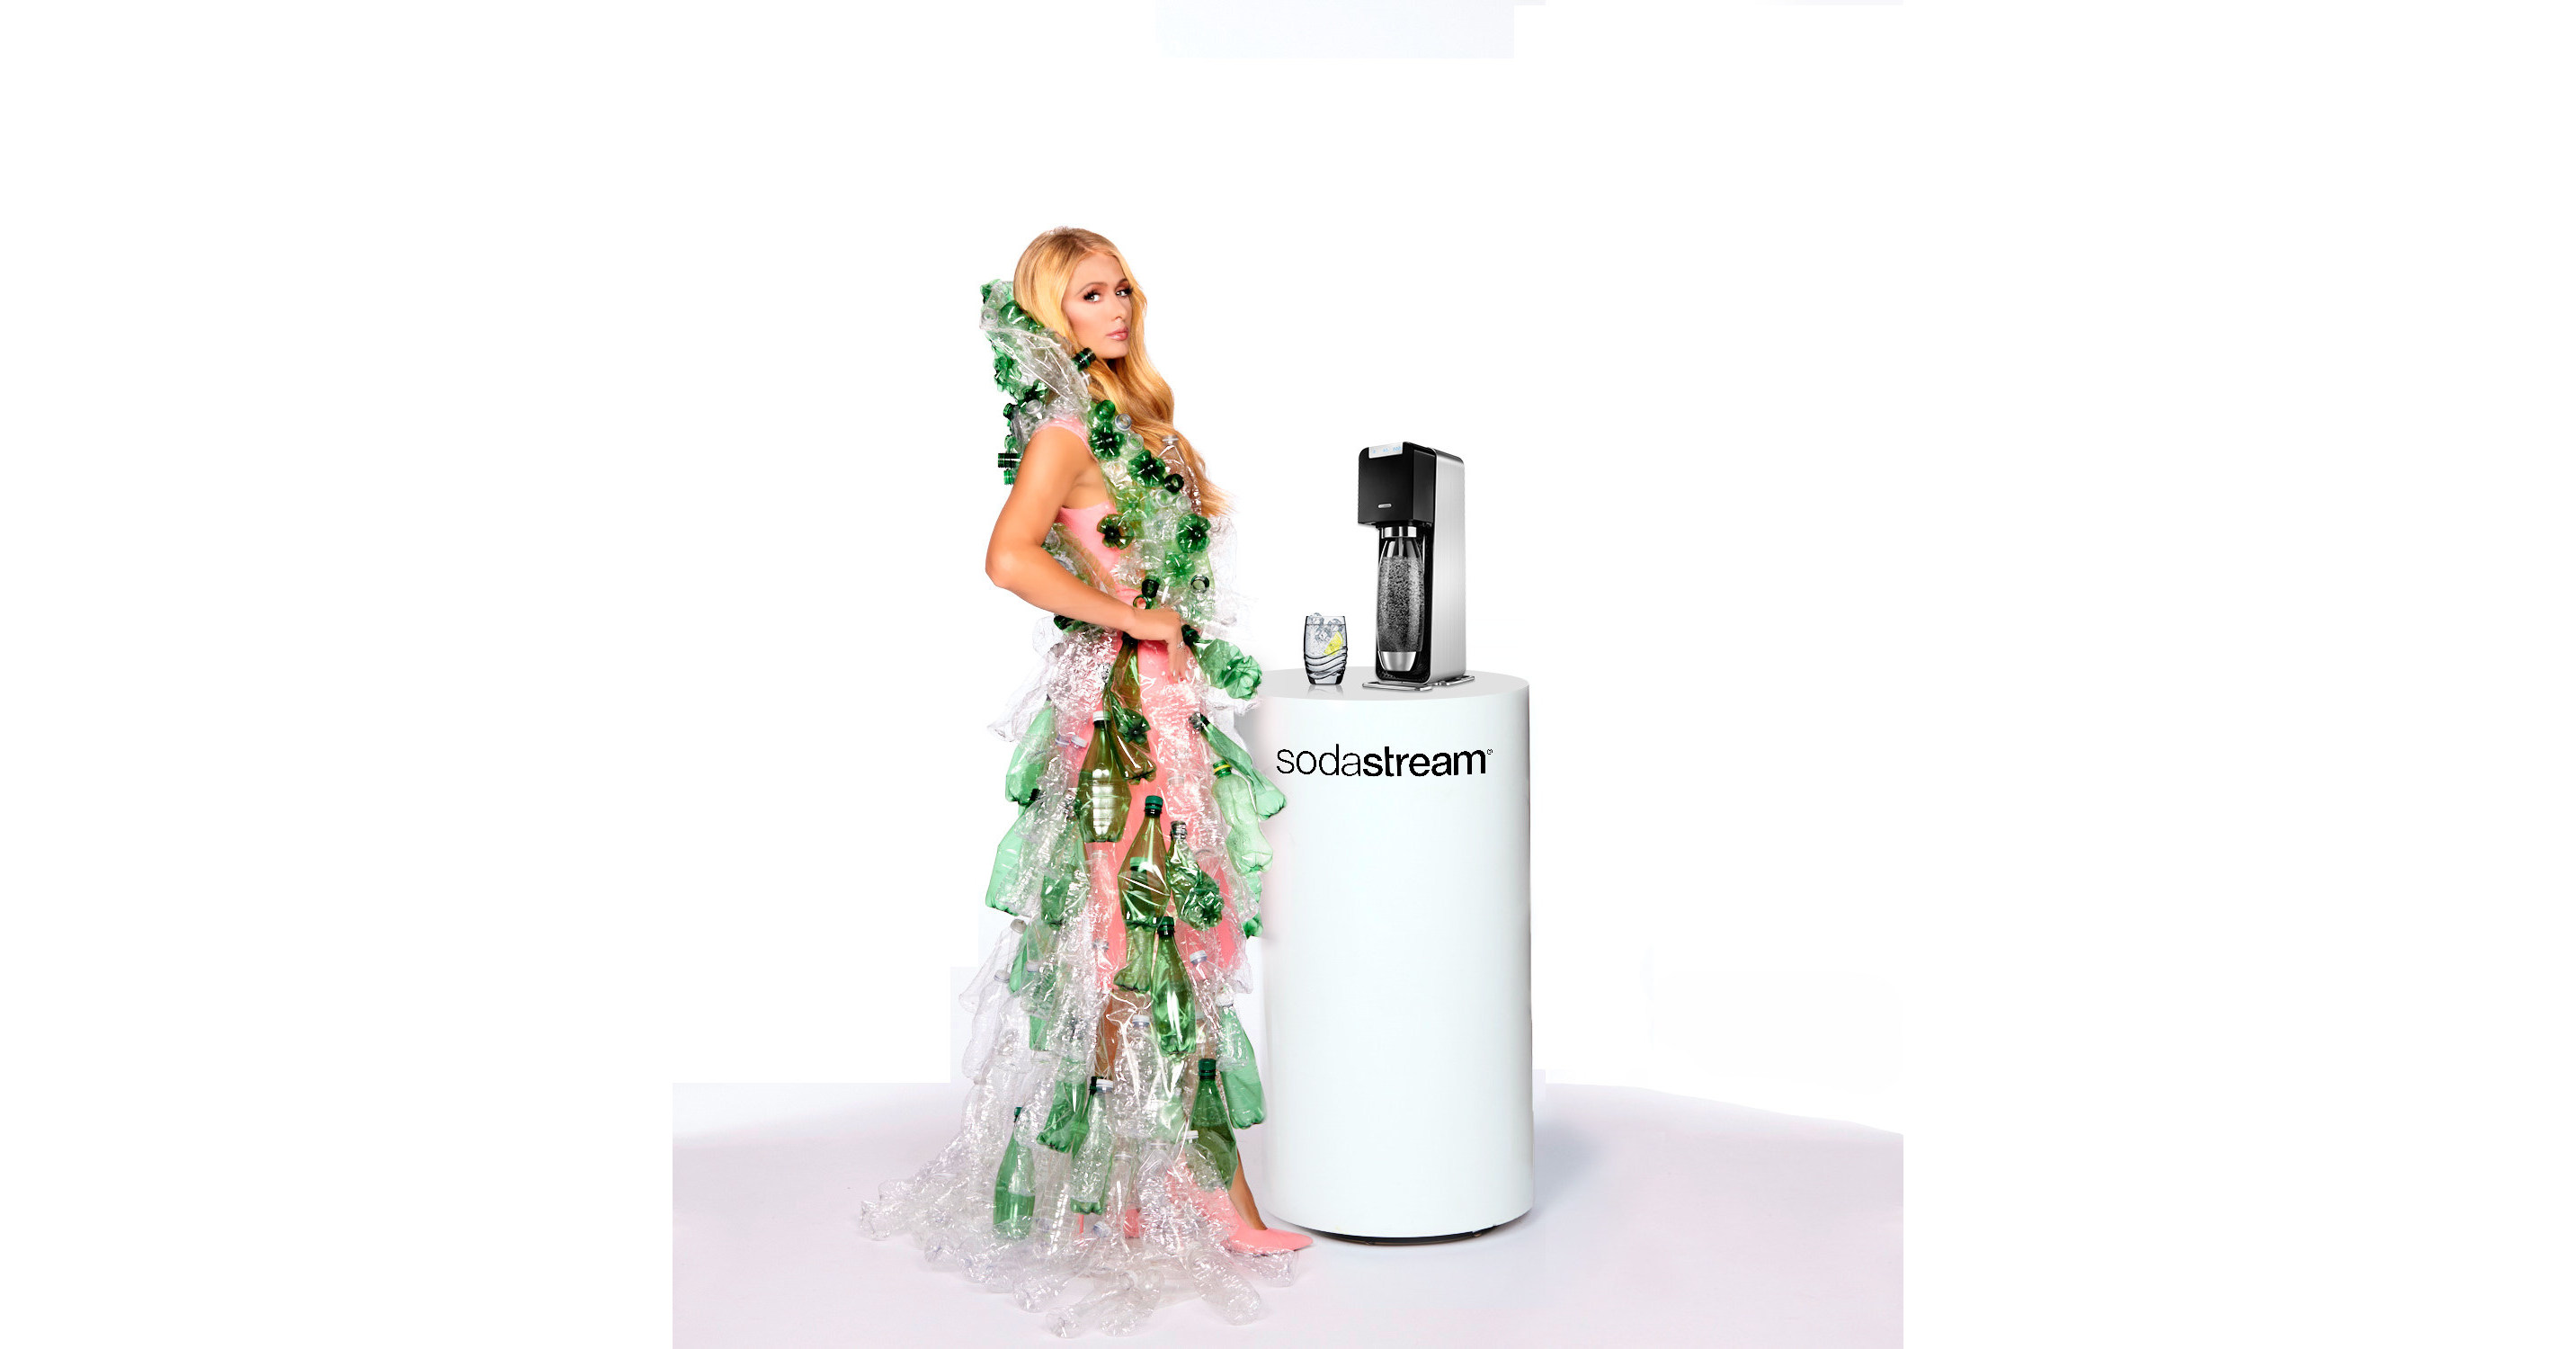 Sodastream Reveals April Fools' Day Prank With Paris Hilton photo